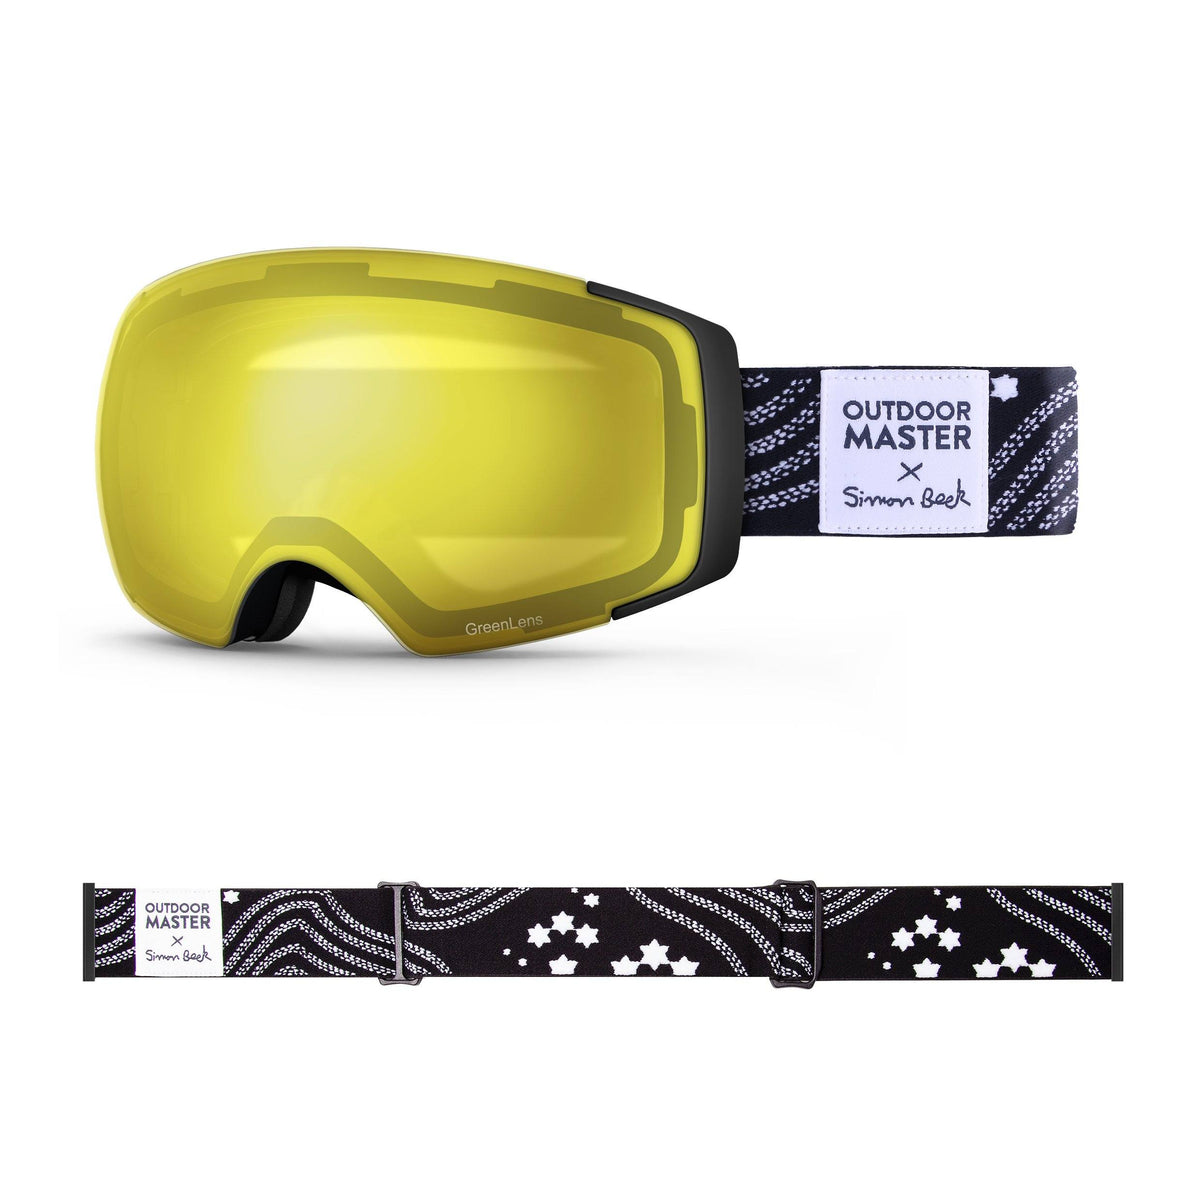 OutdoorMaster x Simon Beck Ski Goggles Pro Series - Snowshoeing Art Limited Edition OutdoorMaster GreenLens VLT 75% TAC Yellow Lens Polarized Star Road-Black